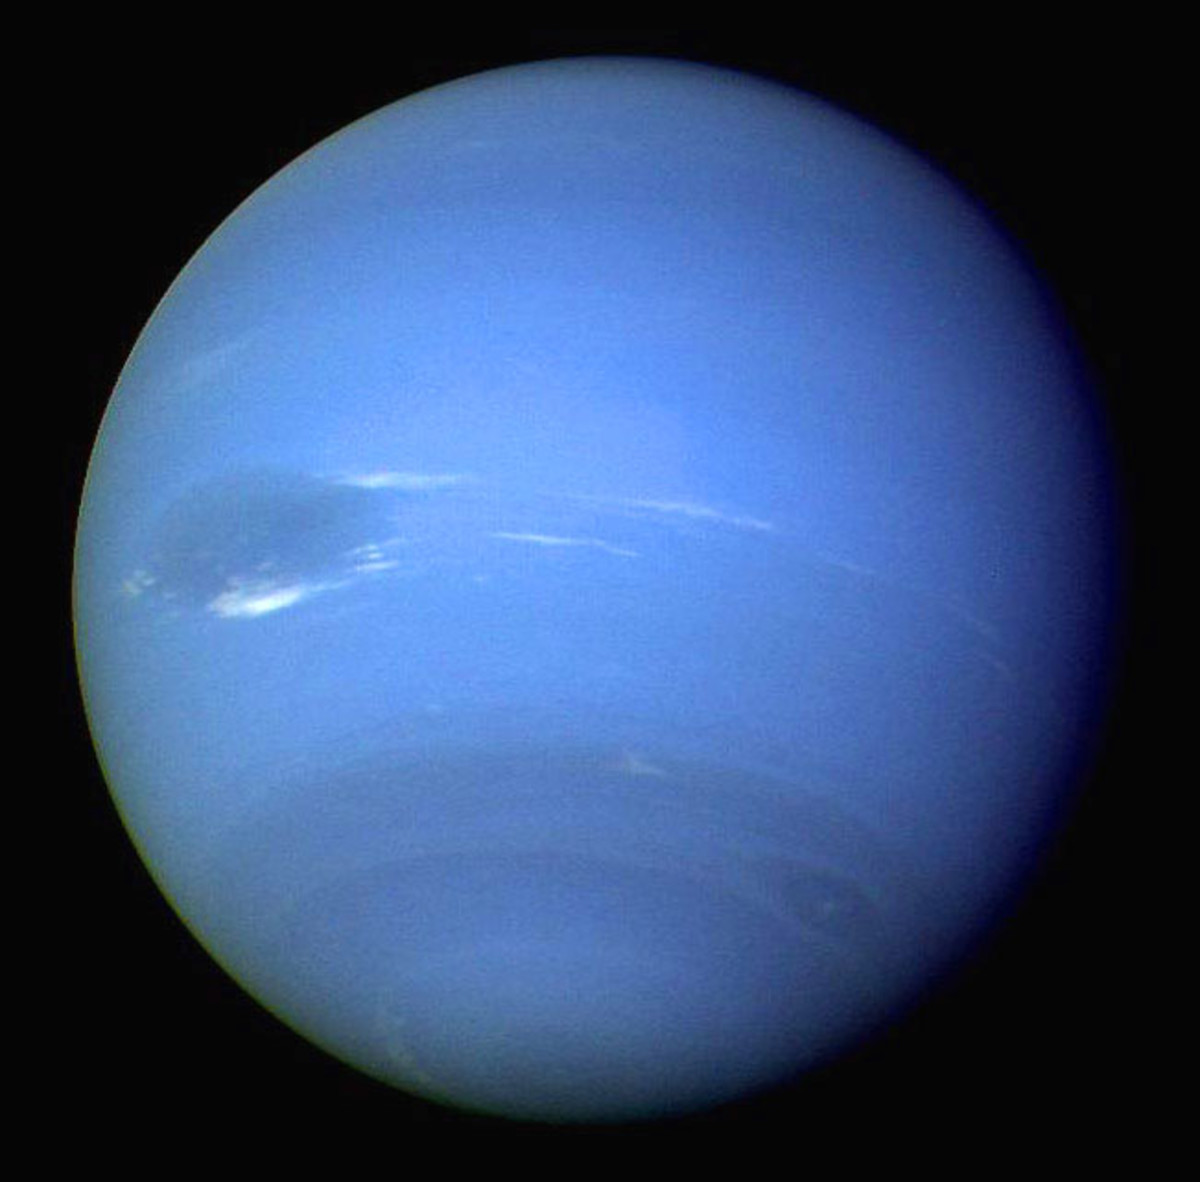 Neptune is the most distant planet from the Sun. Visible is the Great Dark Spot - a massive storm similar to that seen on Jupiter.